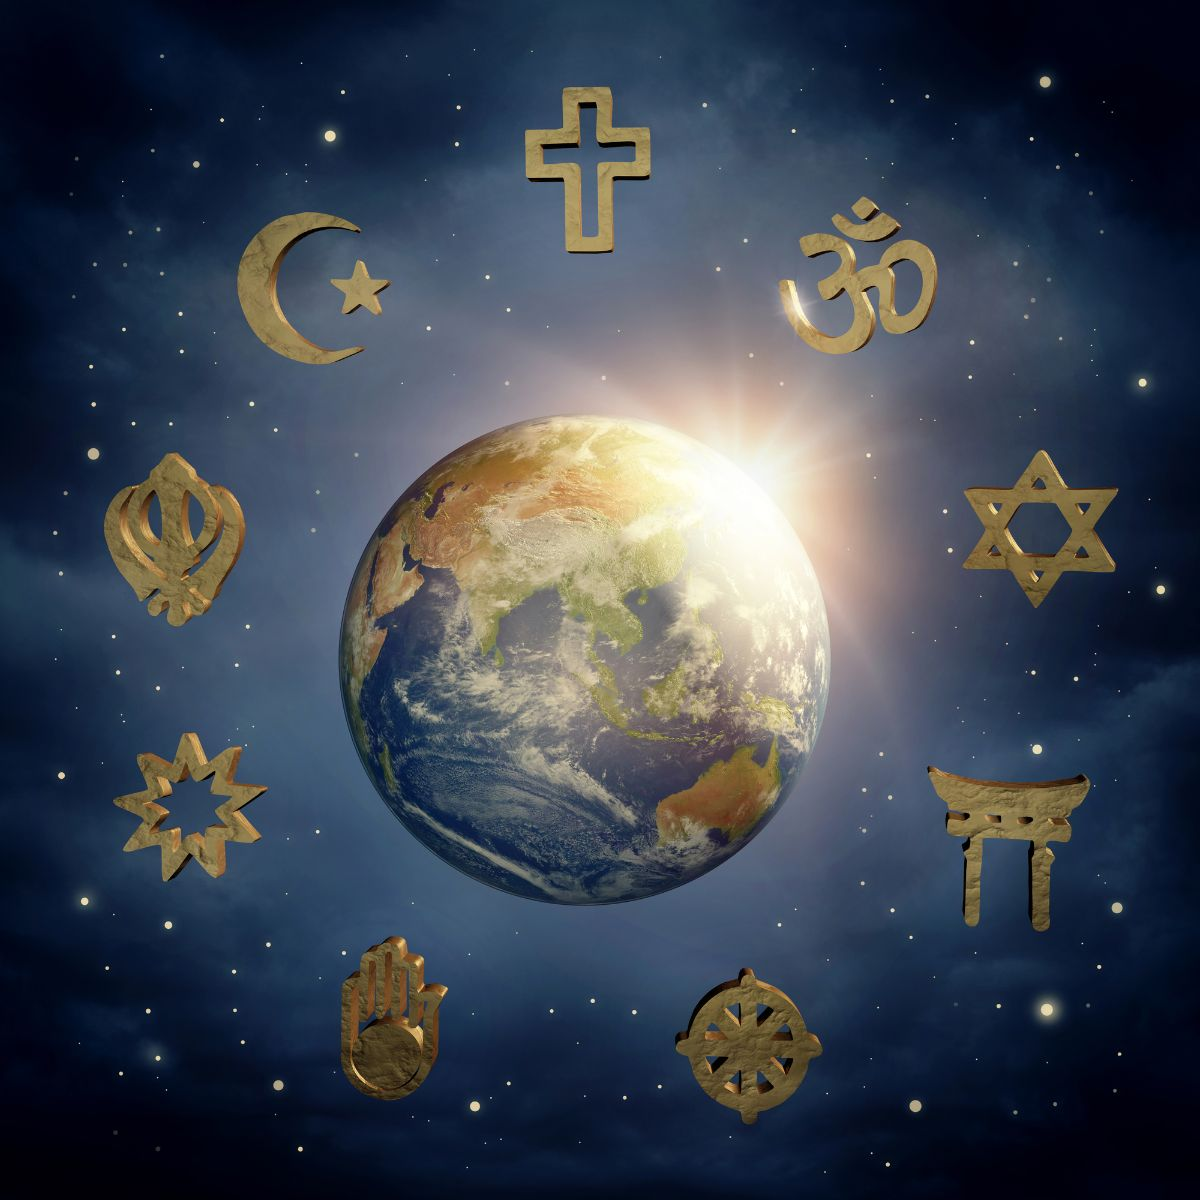 Earth surrounded by religious symbols